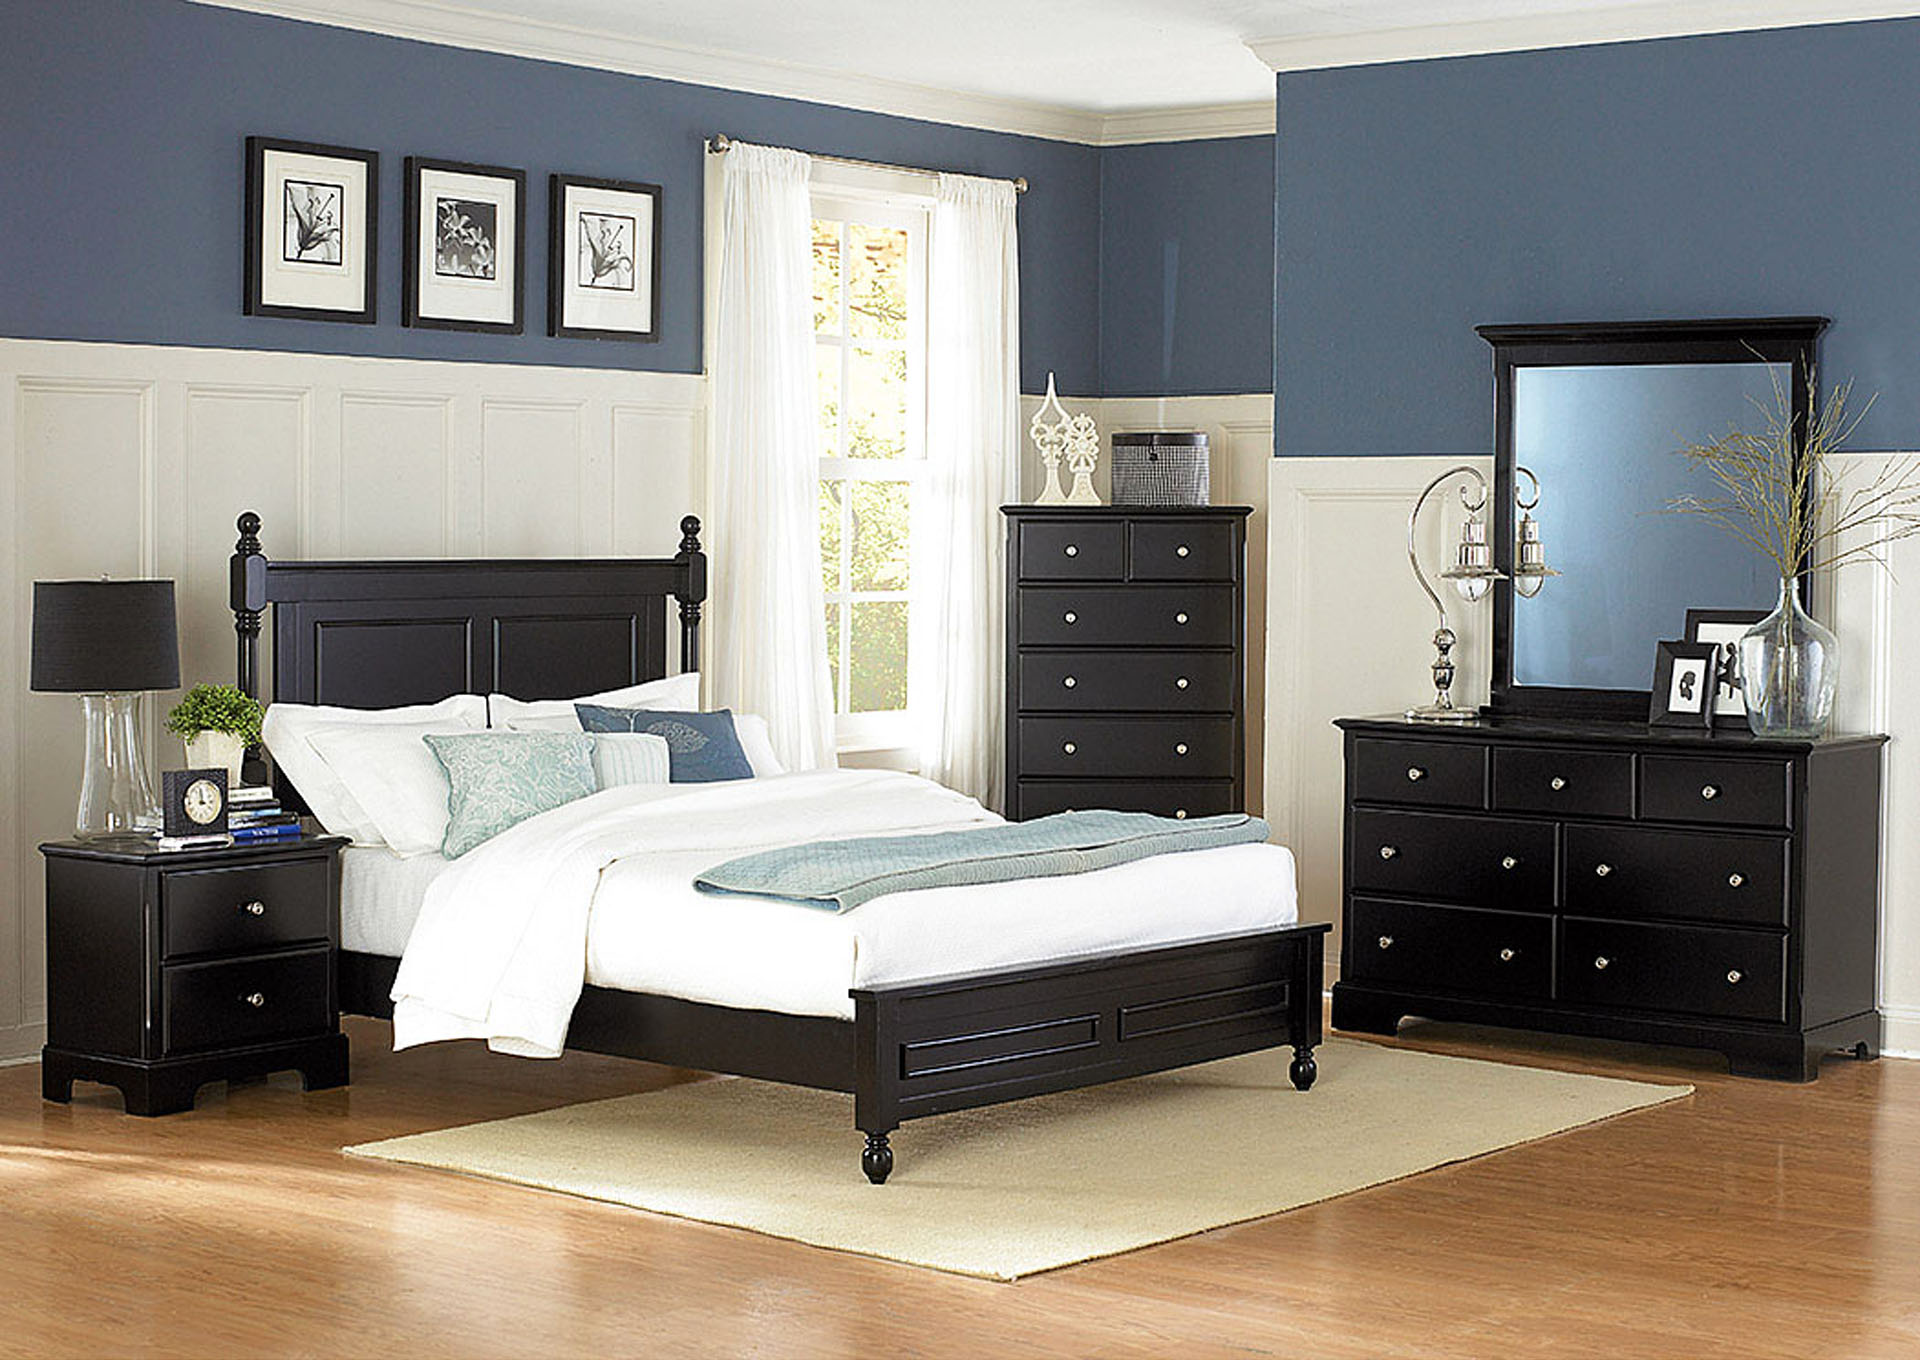 Morelle Black Queen Platform Bed w/ Dresser, Mirror and Nightstand,Homelegance